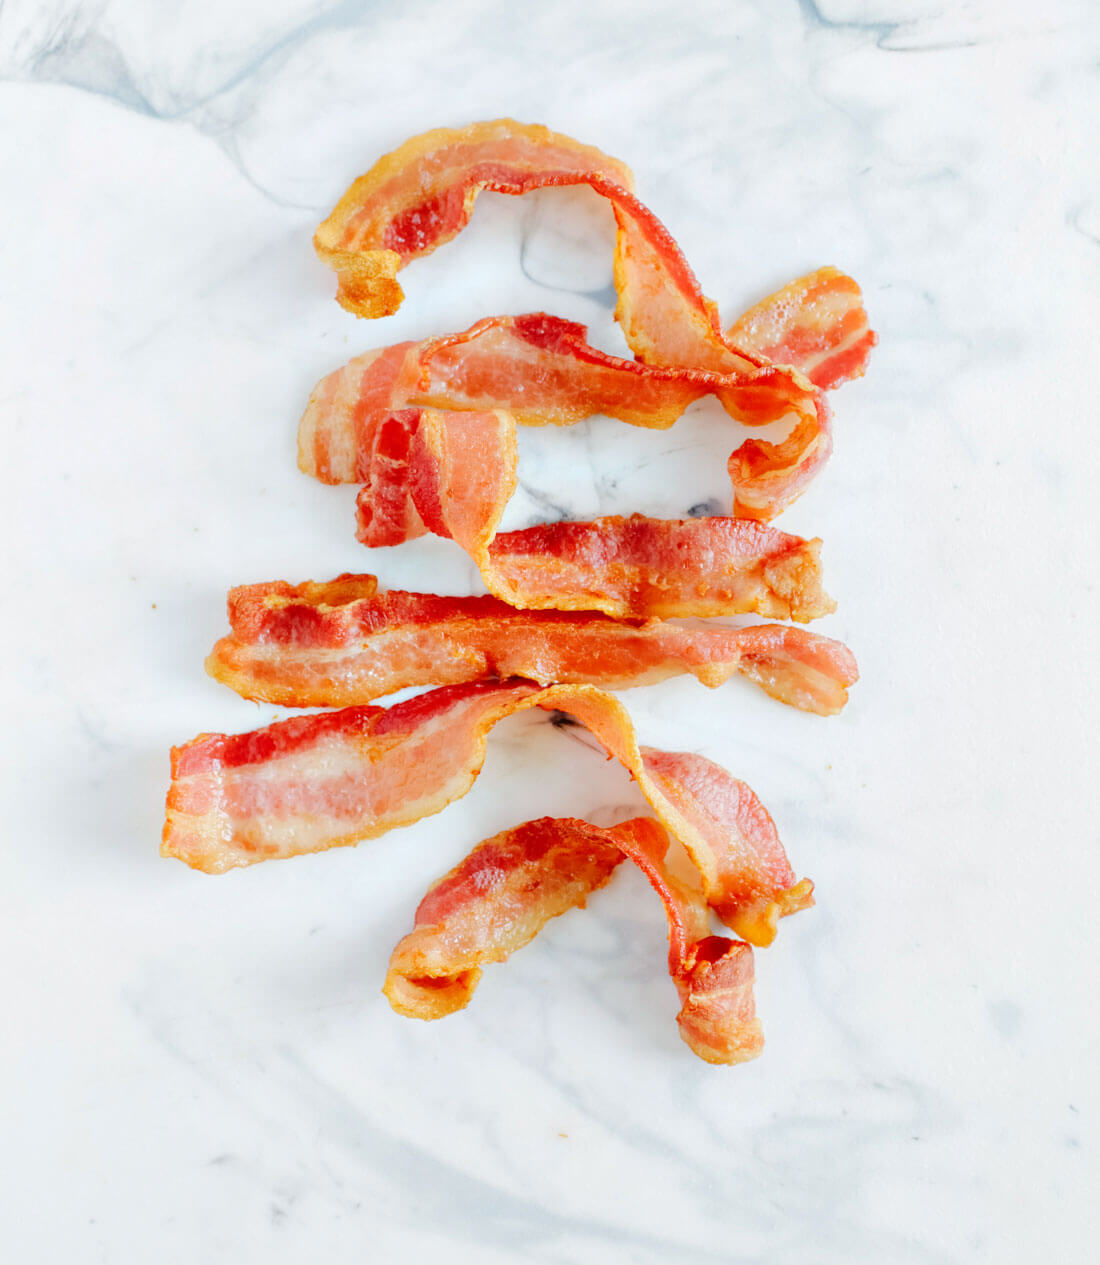 How to perfectly cook bacon in the air fryer